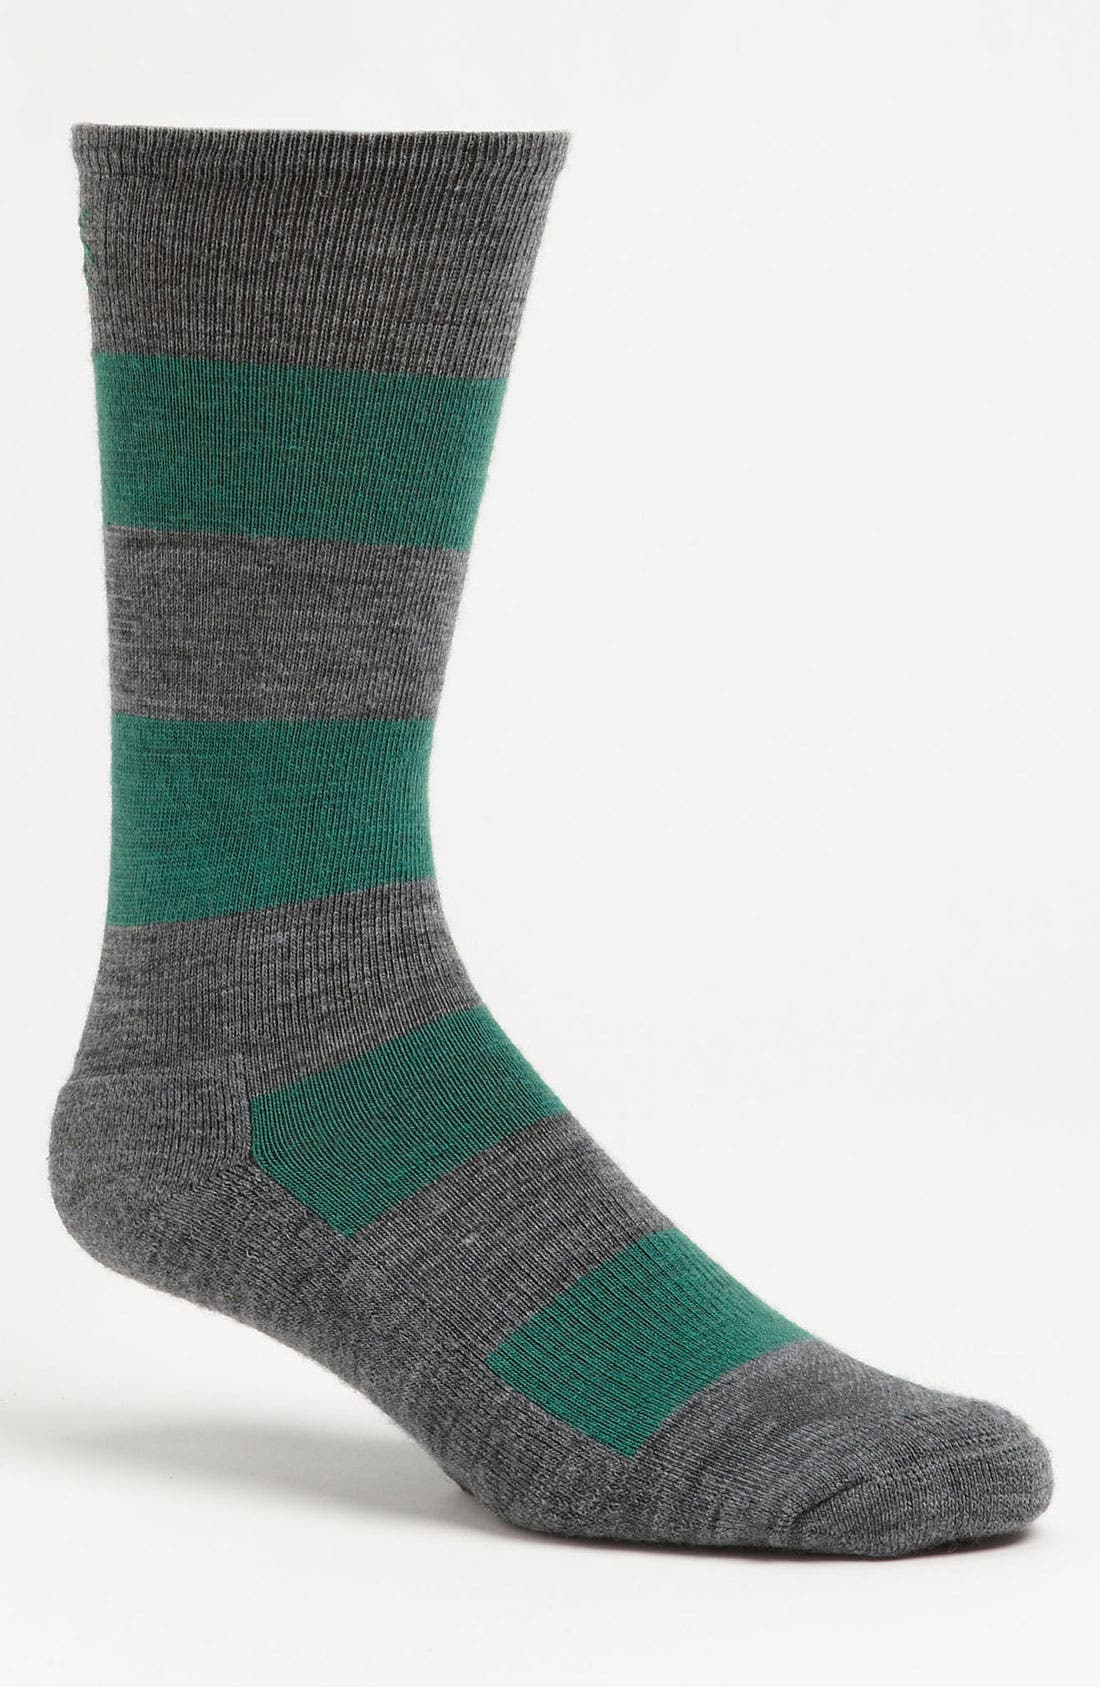 Alternate Image 1 Selected - Smartwool 'Double Insignia' Socks